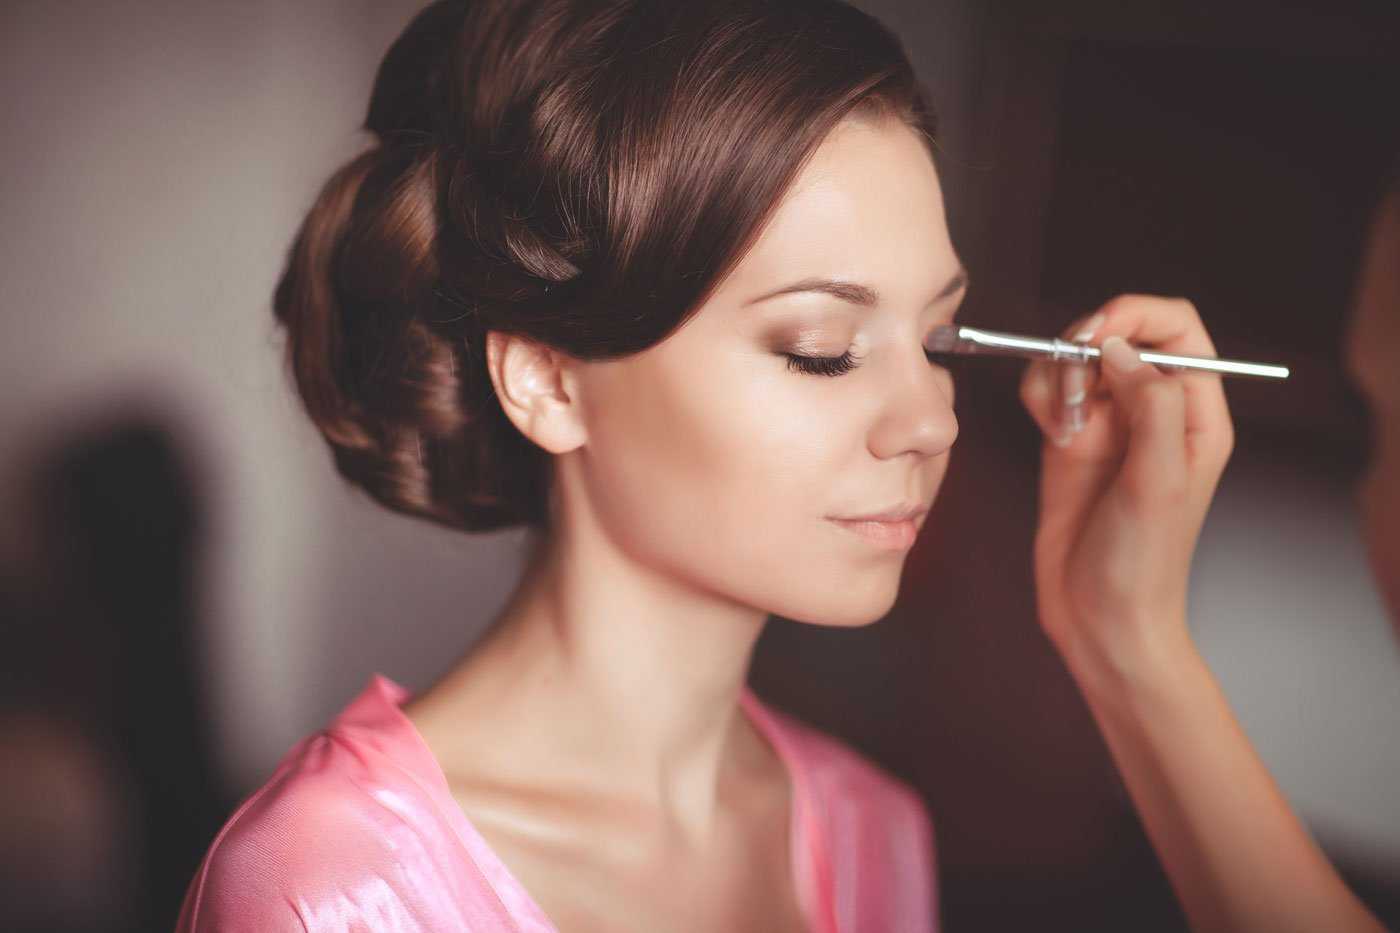 Specialist makeup for special events